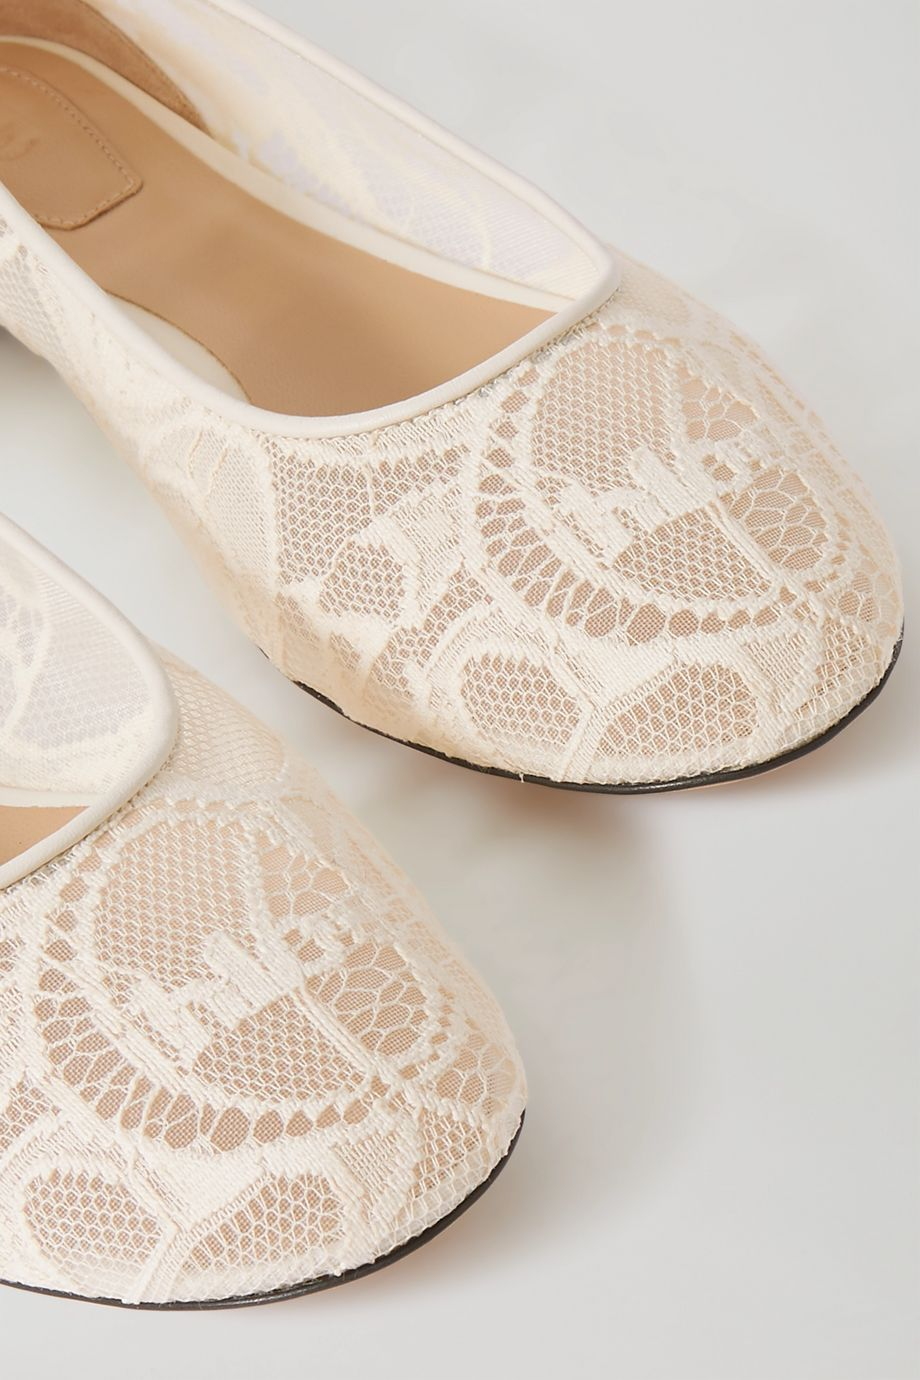 Chloé Lauren leather-trimmed logo-embroidered lace ballet flats